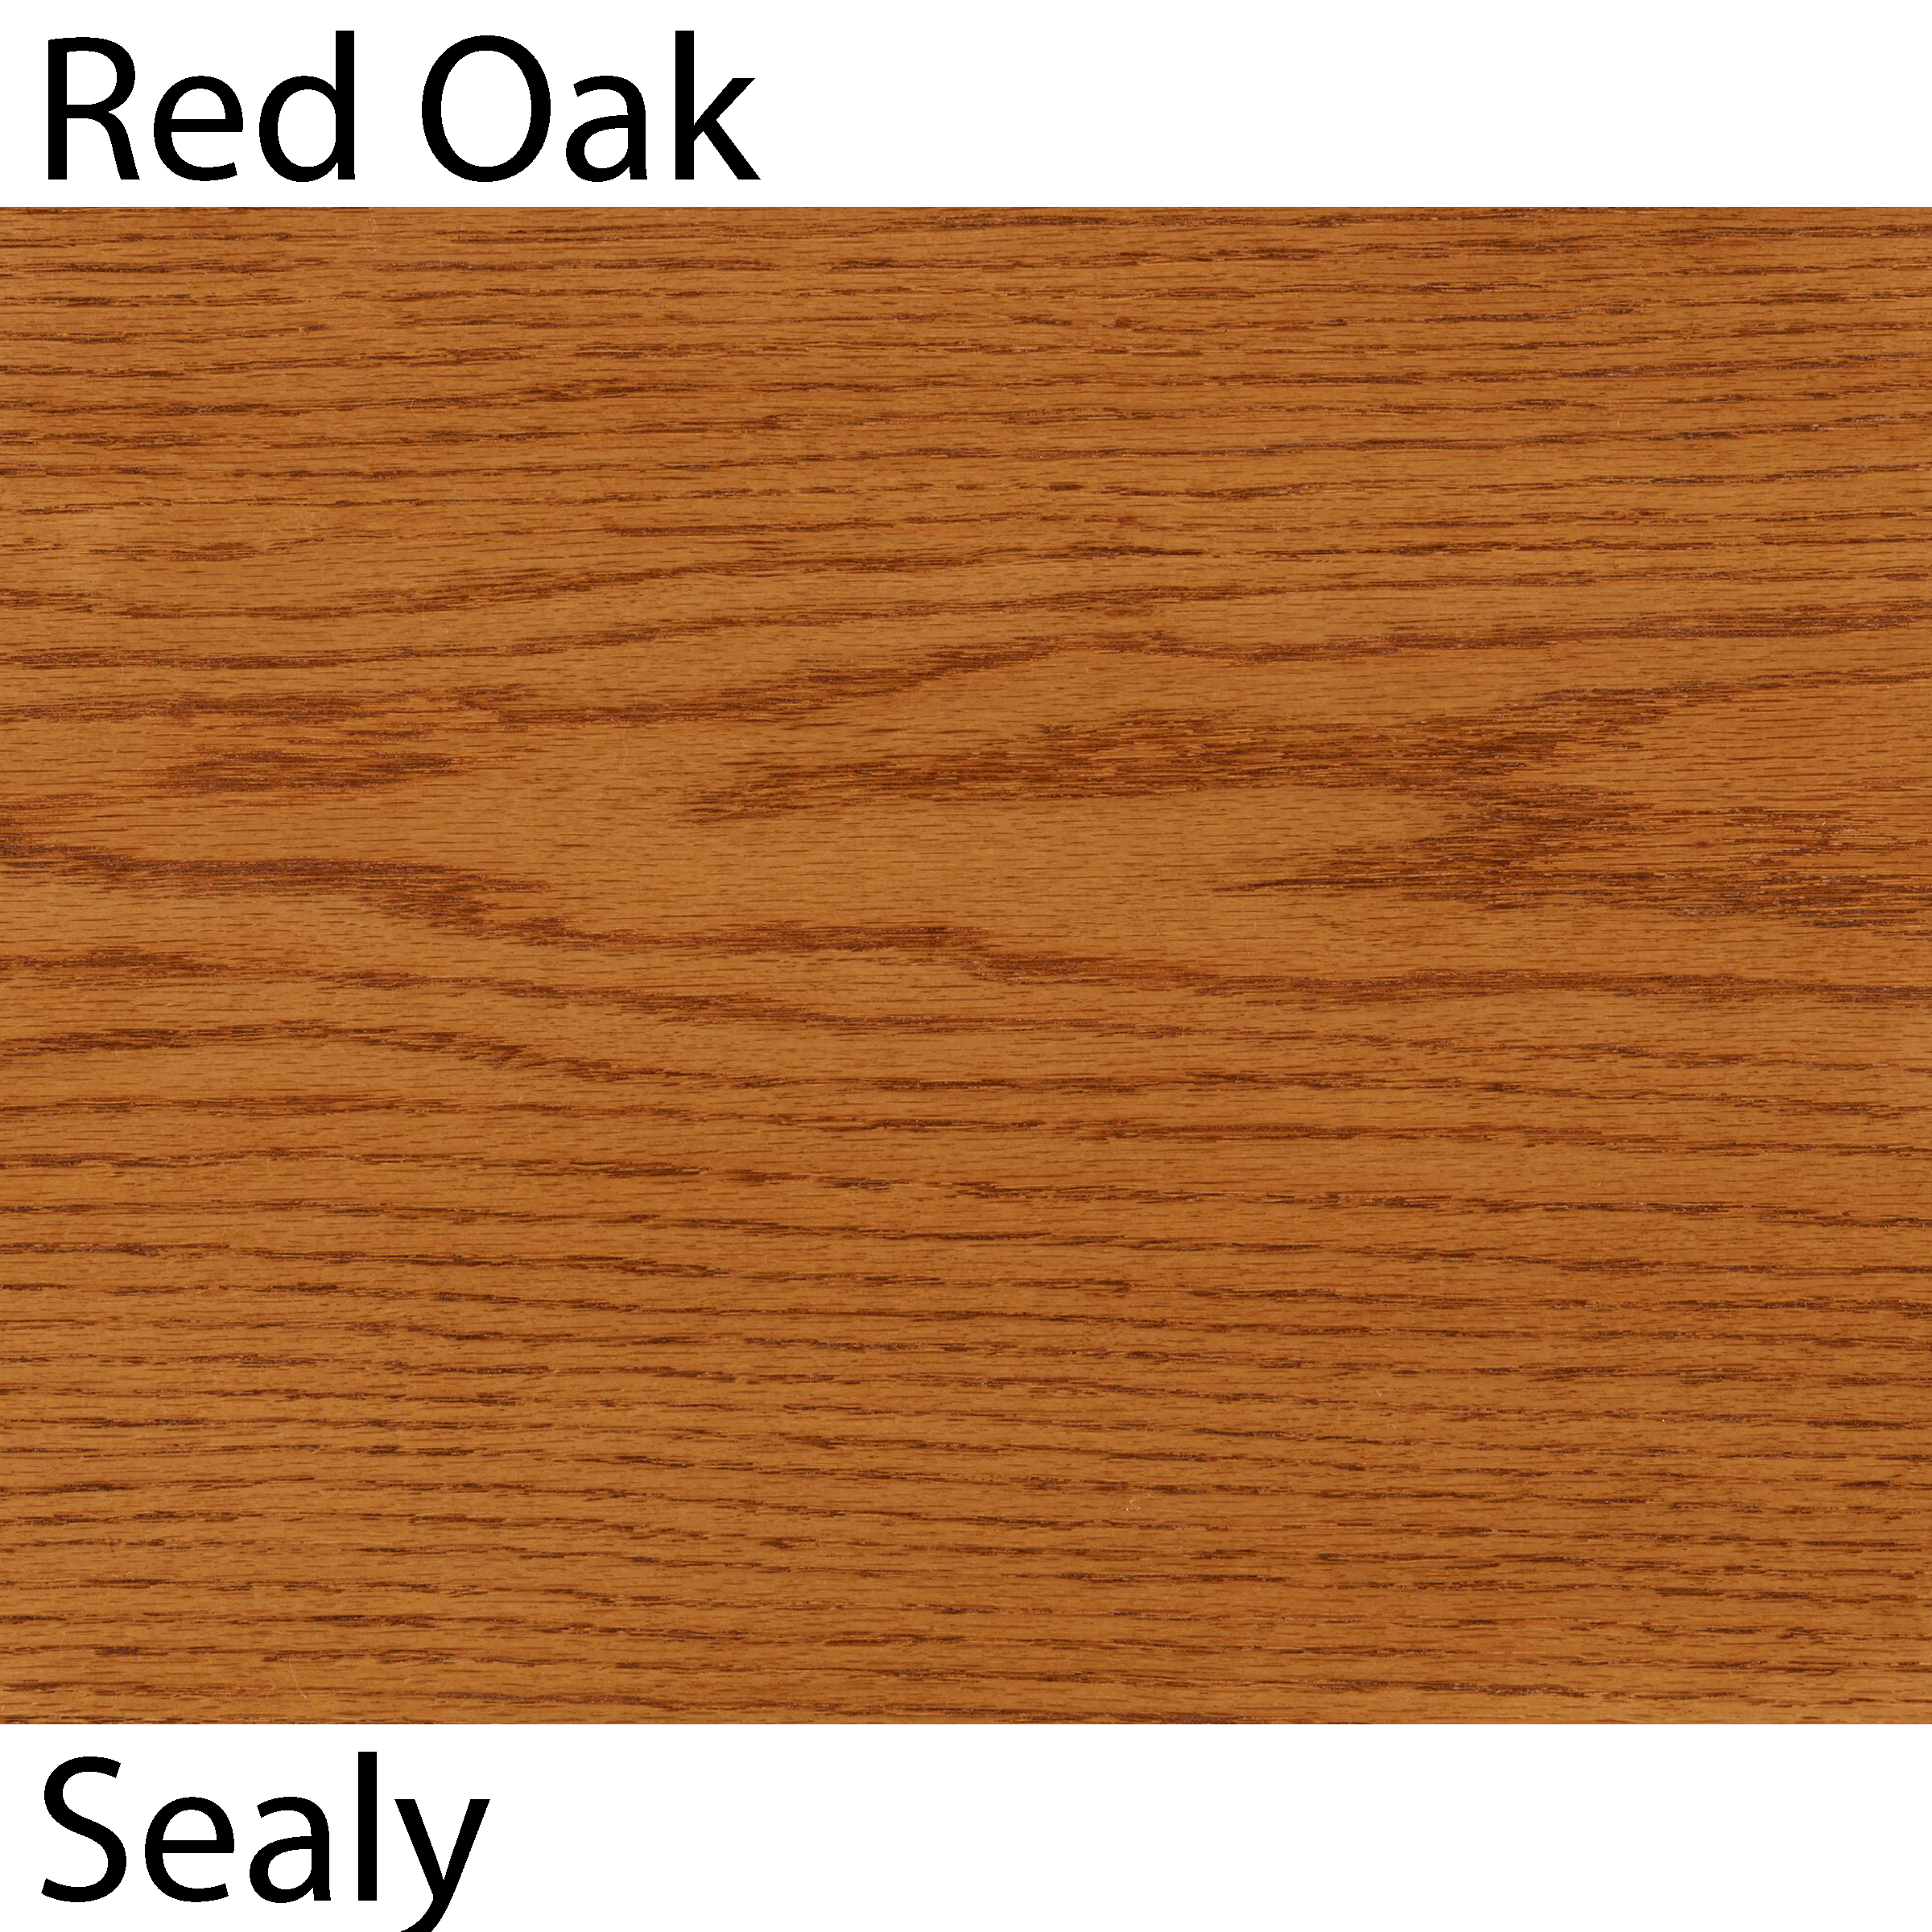 Red Oak Wood Stairsupplies